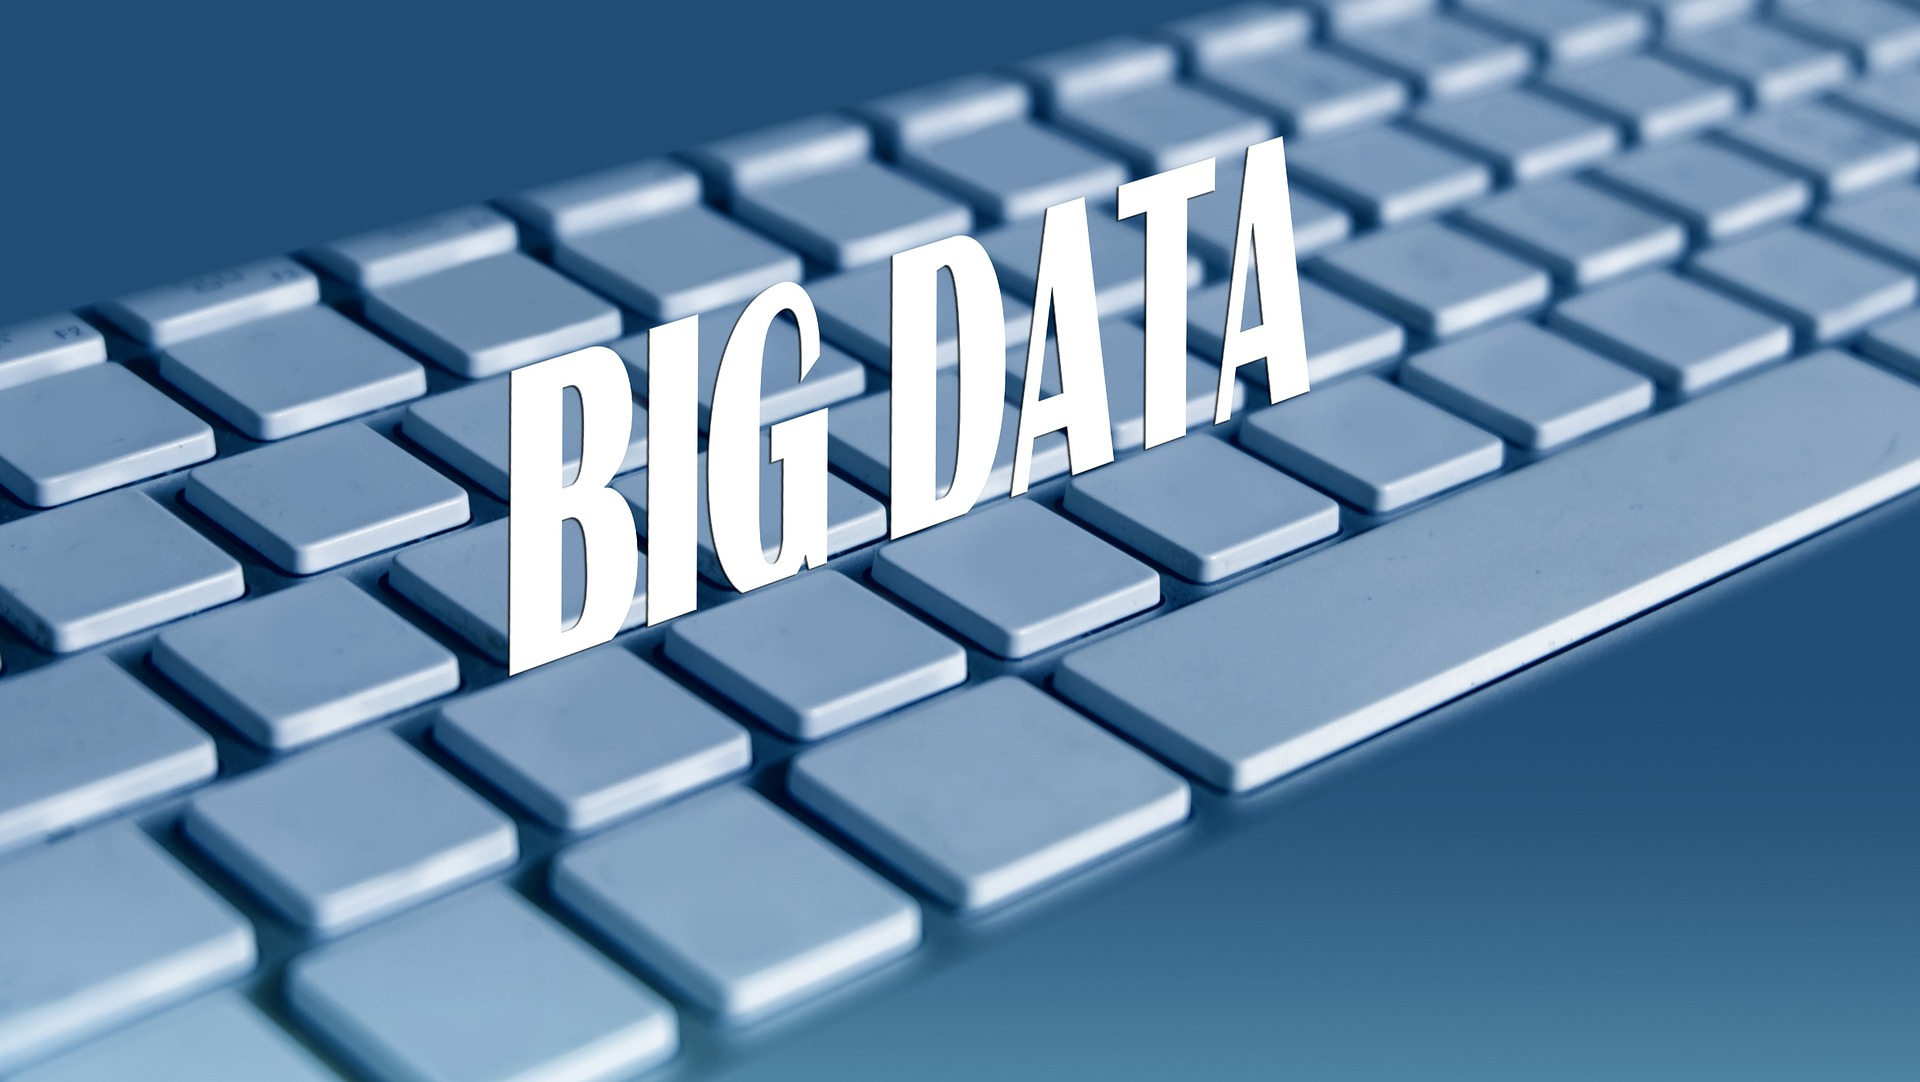 B2B invertirán en Big Data